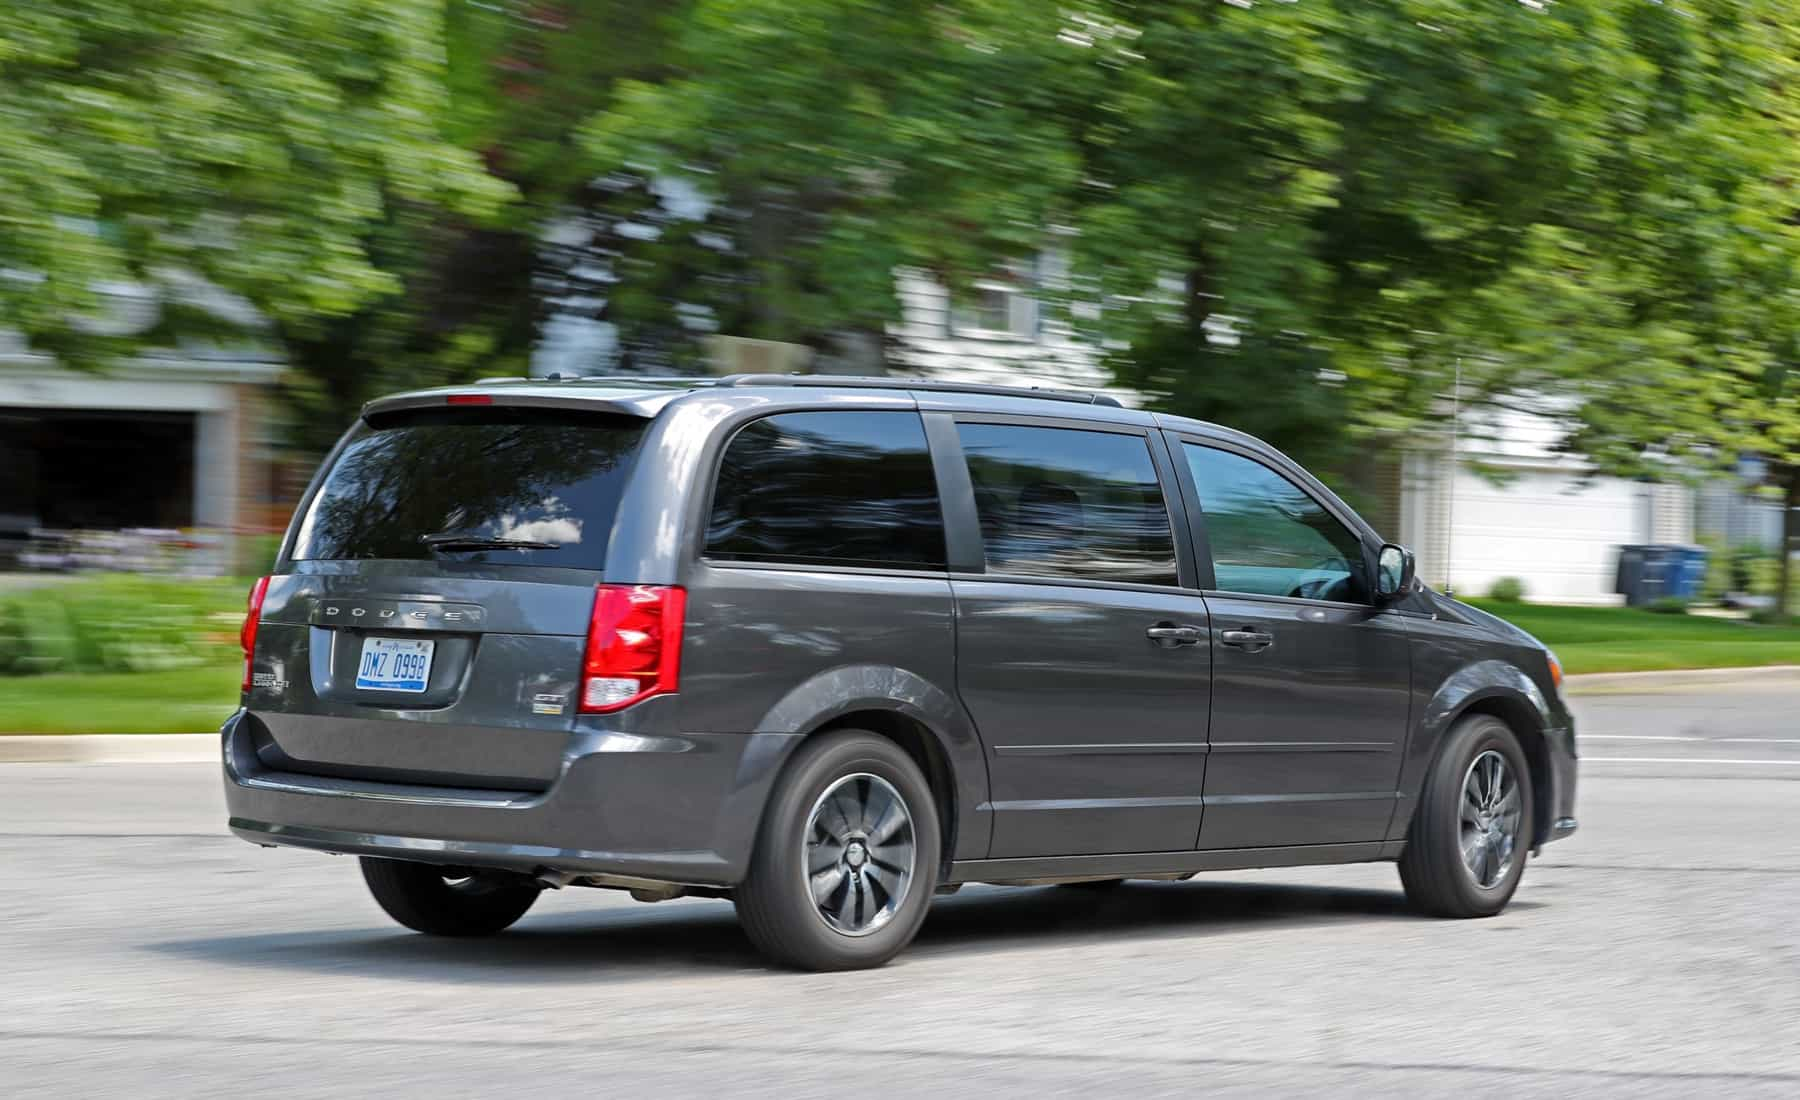 2017 Dodge Grand Caravan Test Drive Rear And Side Preview (Photo 42 of 47)